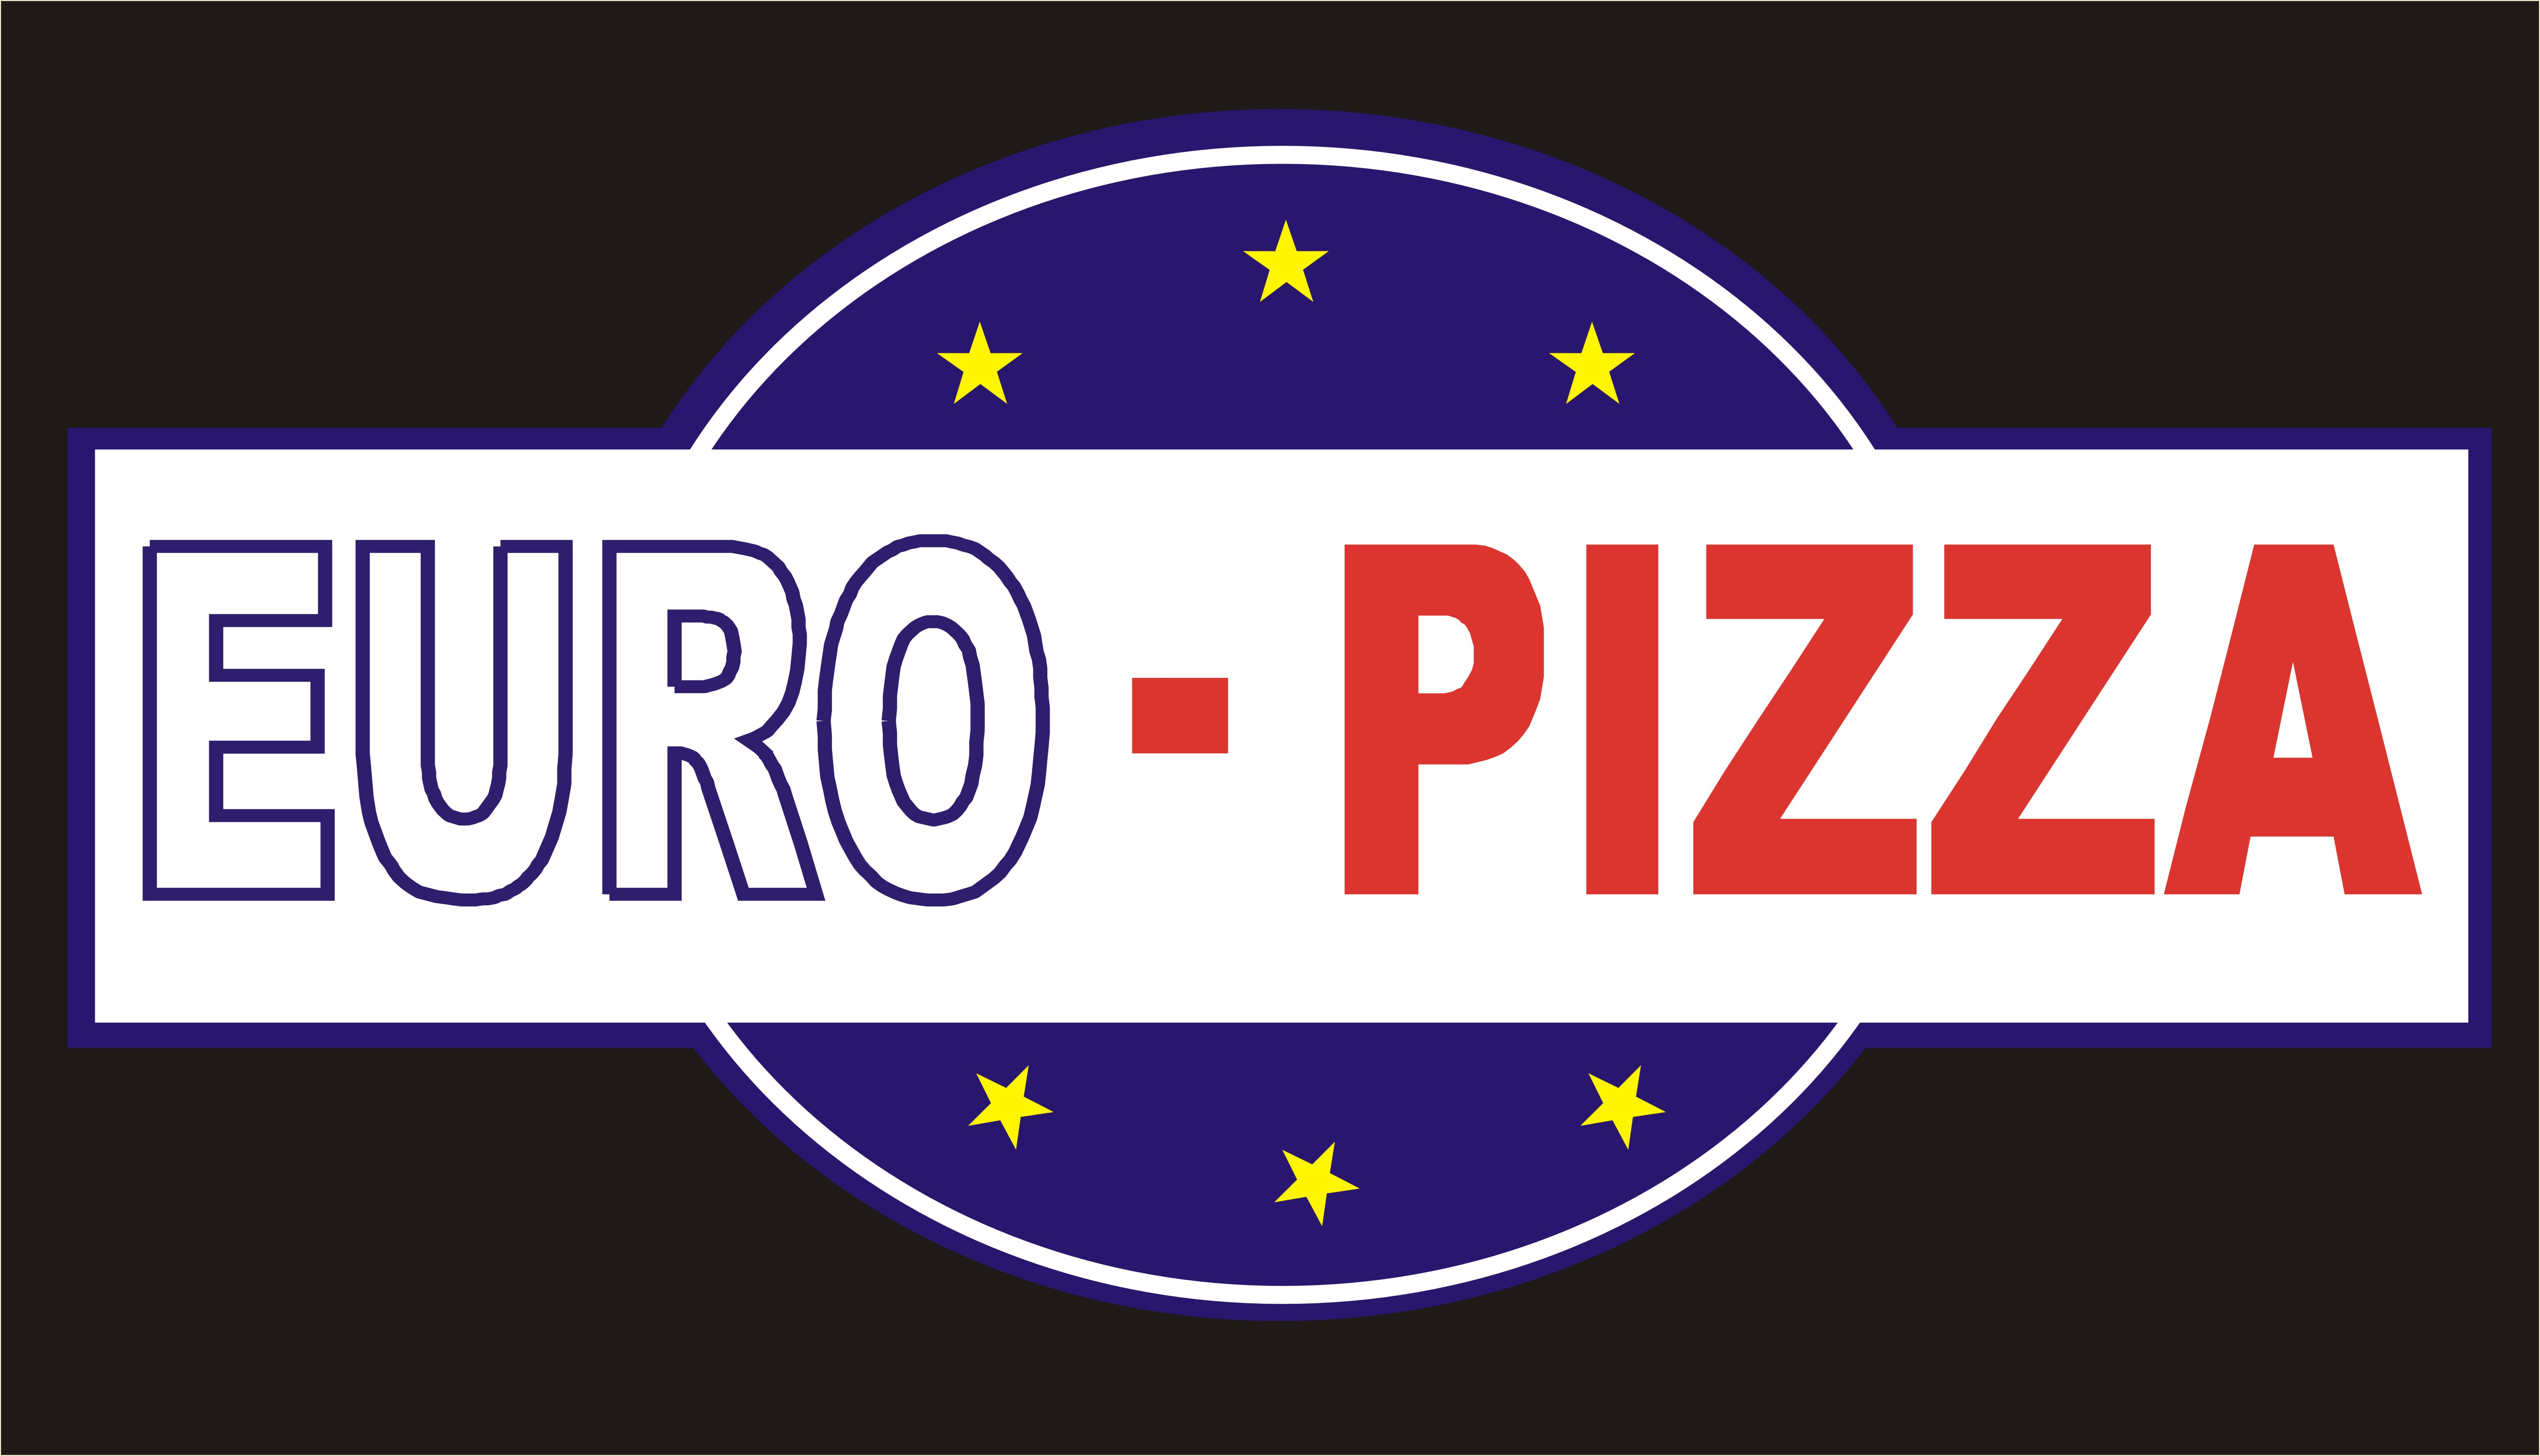 Euro-Pizza logo